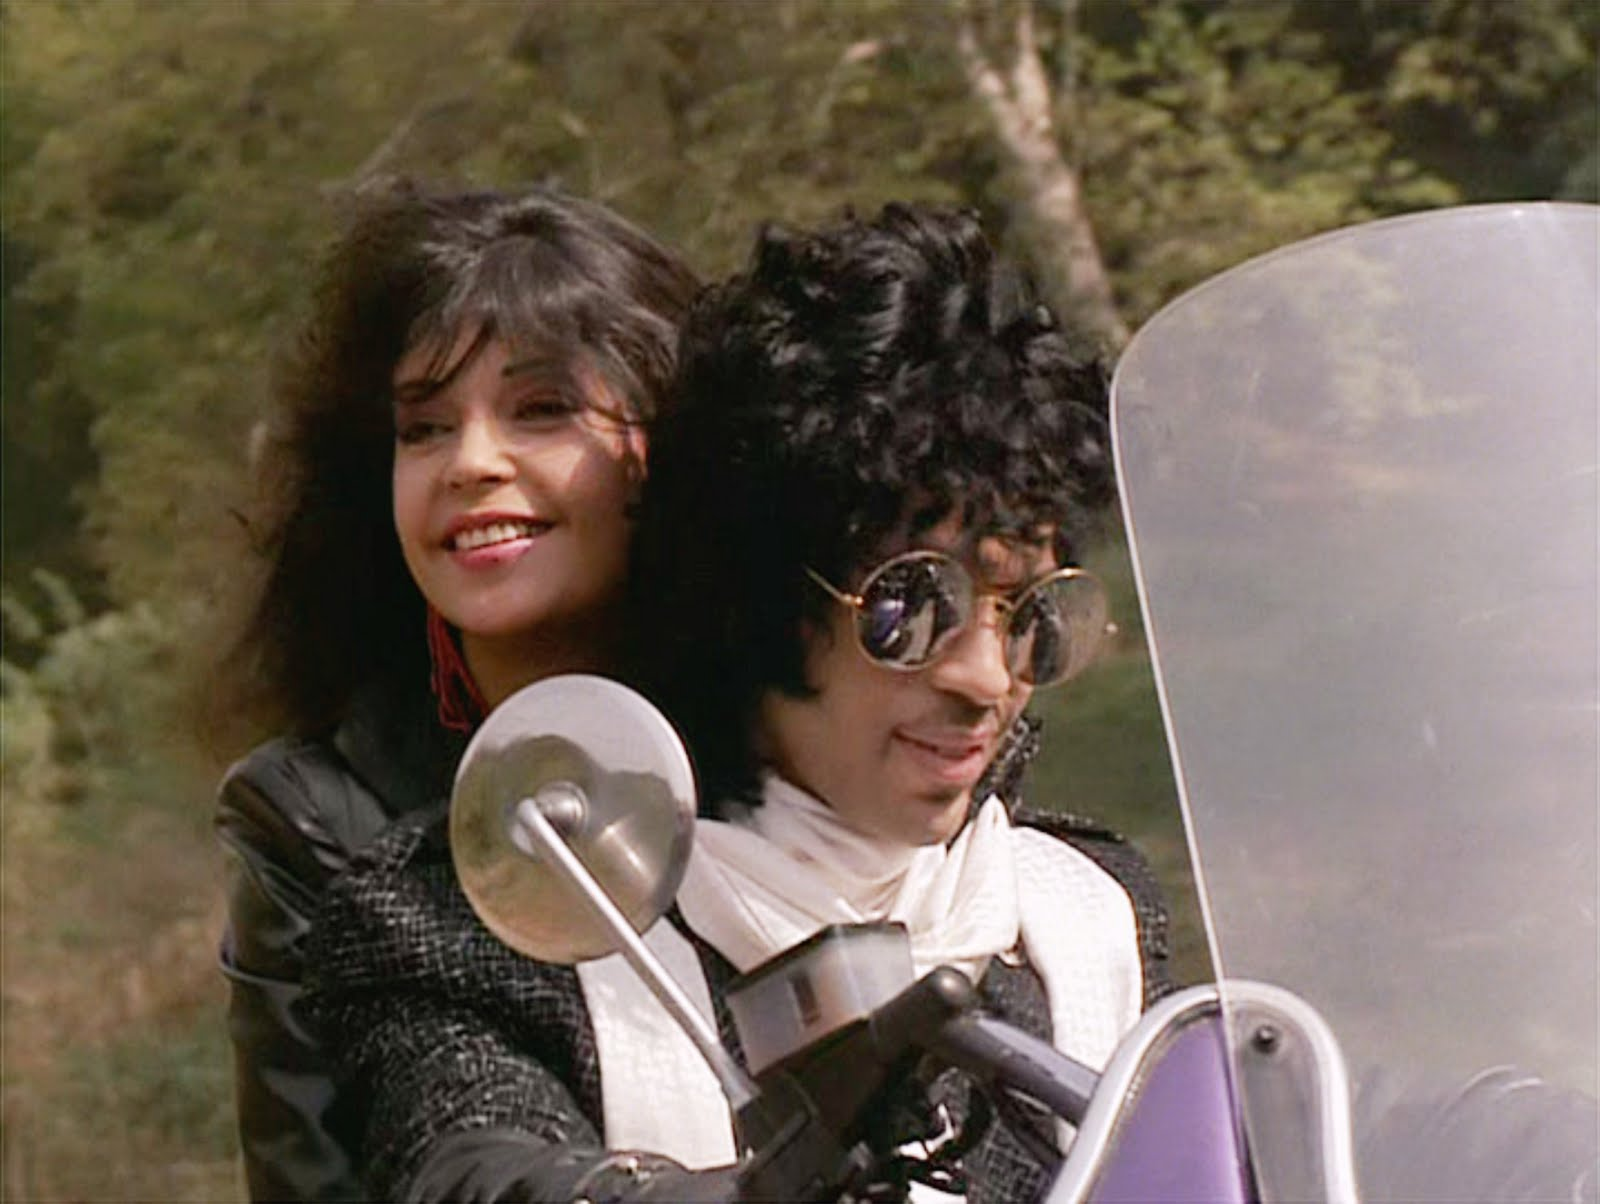 Take Me With U: Prince's best duets (feat. @JanelleMonae, @KateBushMusic, and more) https://t.co/xJXqT0k9Ja https://t.co/zVLrQiAOUd